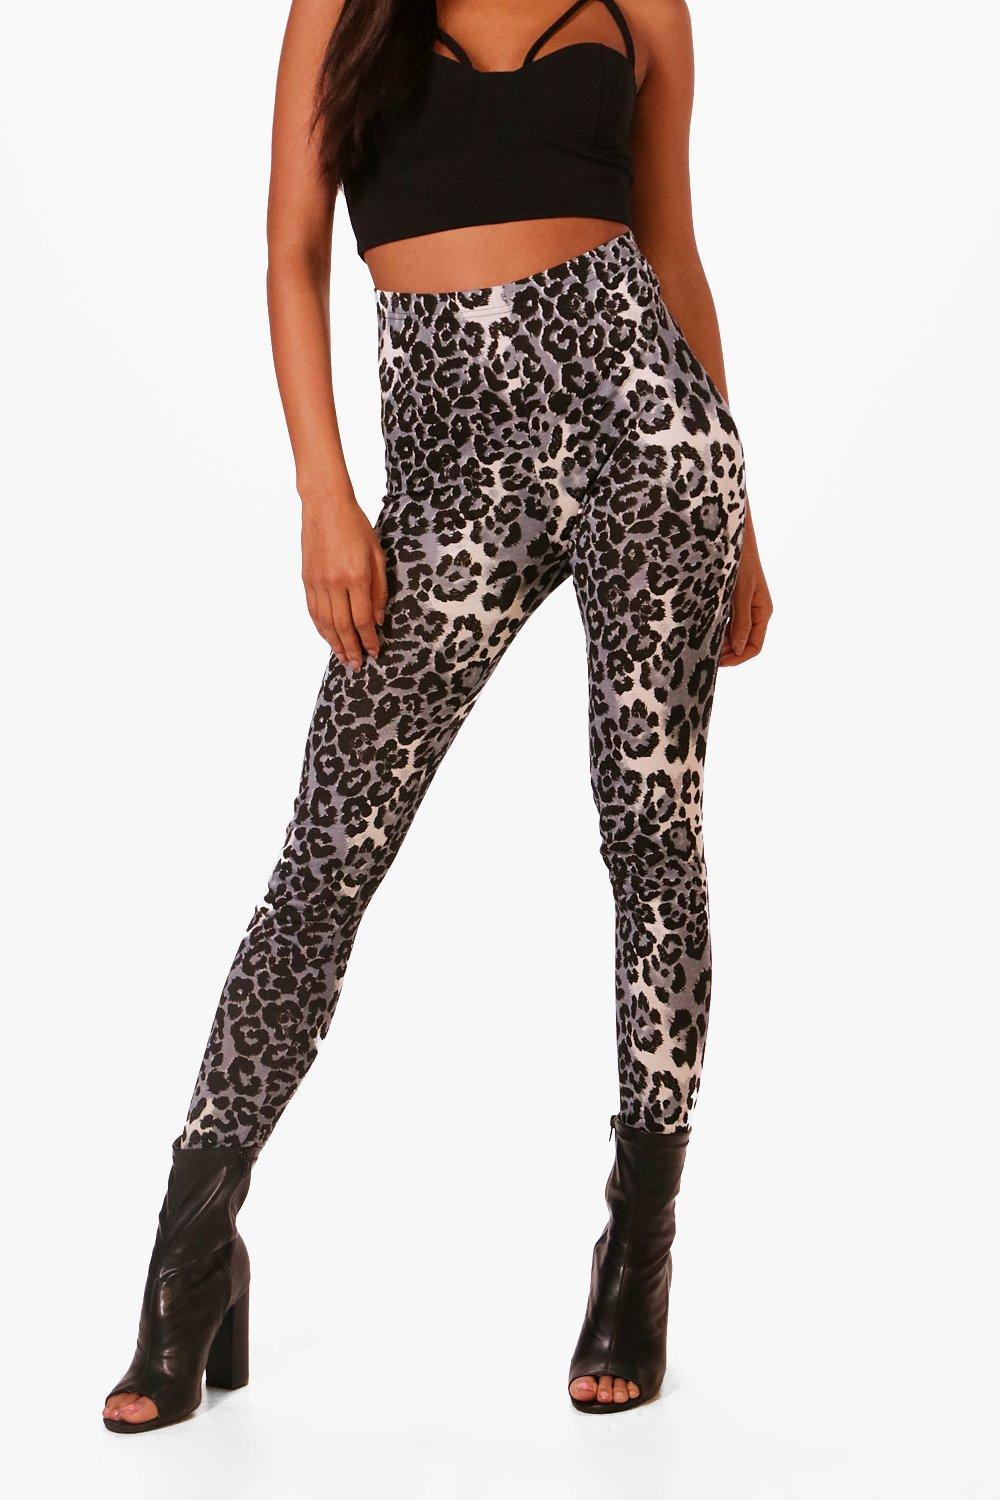 grey grey Leggings Leopard Leggings Leggings Print Print Leopard Leopard Print 7SHqFq